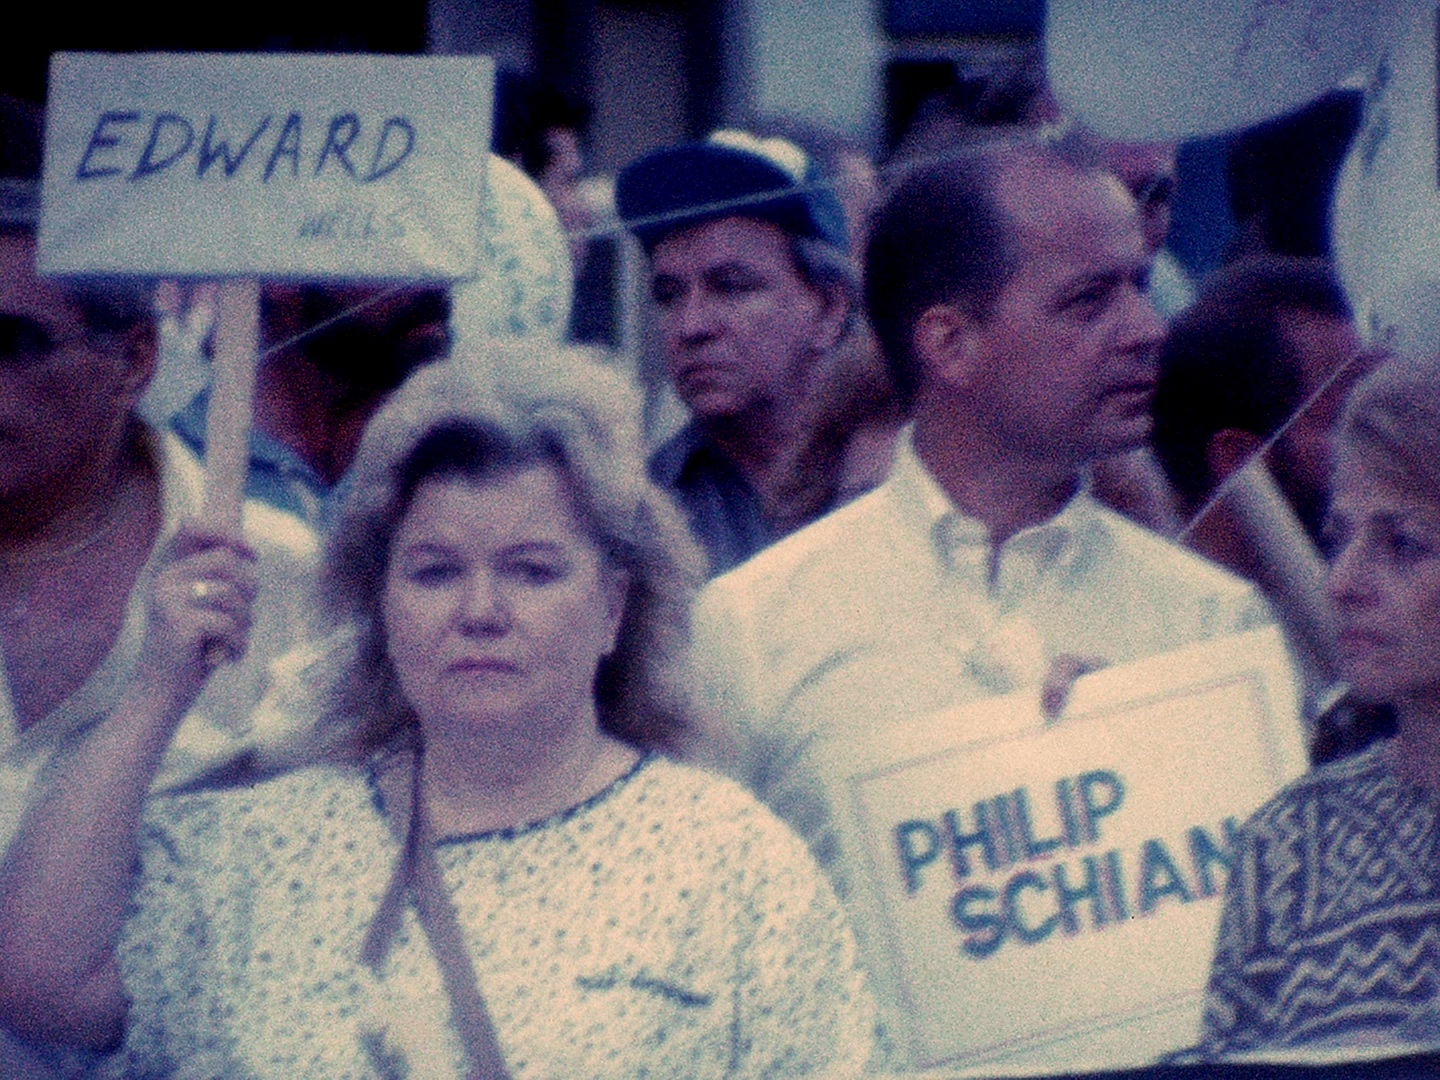 AIDS Candlelight Vigil, Christopher Street, New York City, May 1987. Courtesy Jim Hubbard. Image subject to copyright laws.